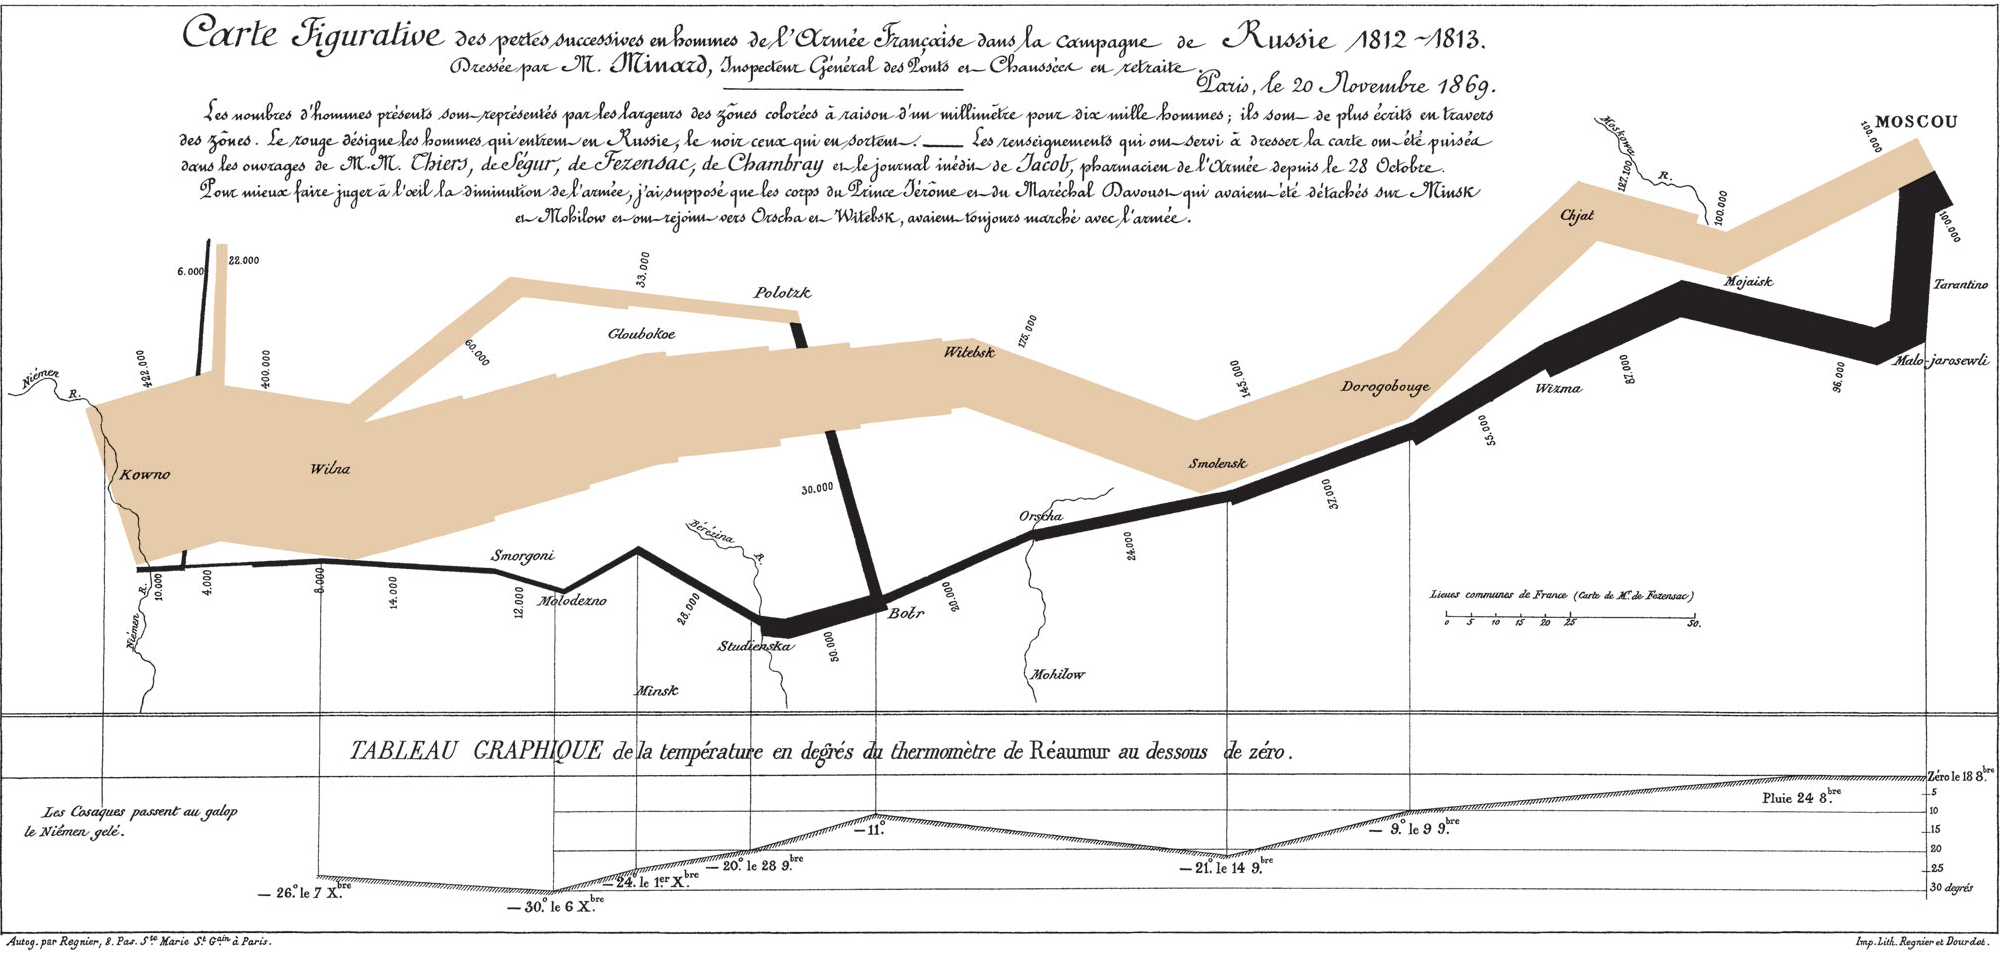 Minard Map of Napoleon's 1812 Campaign